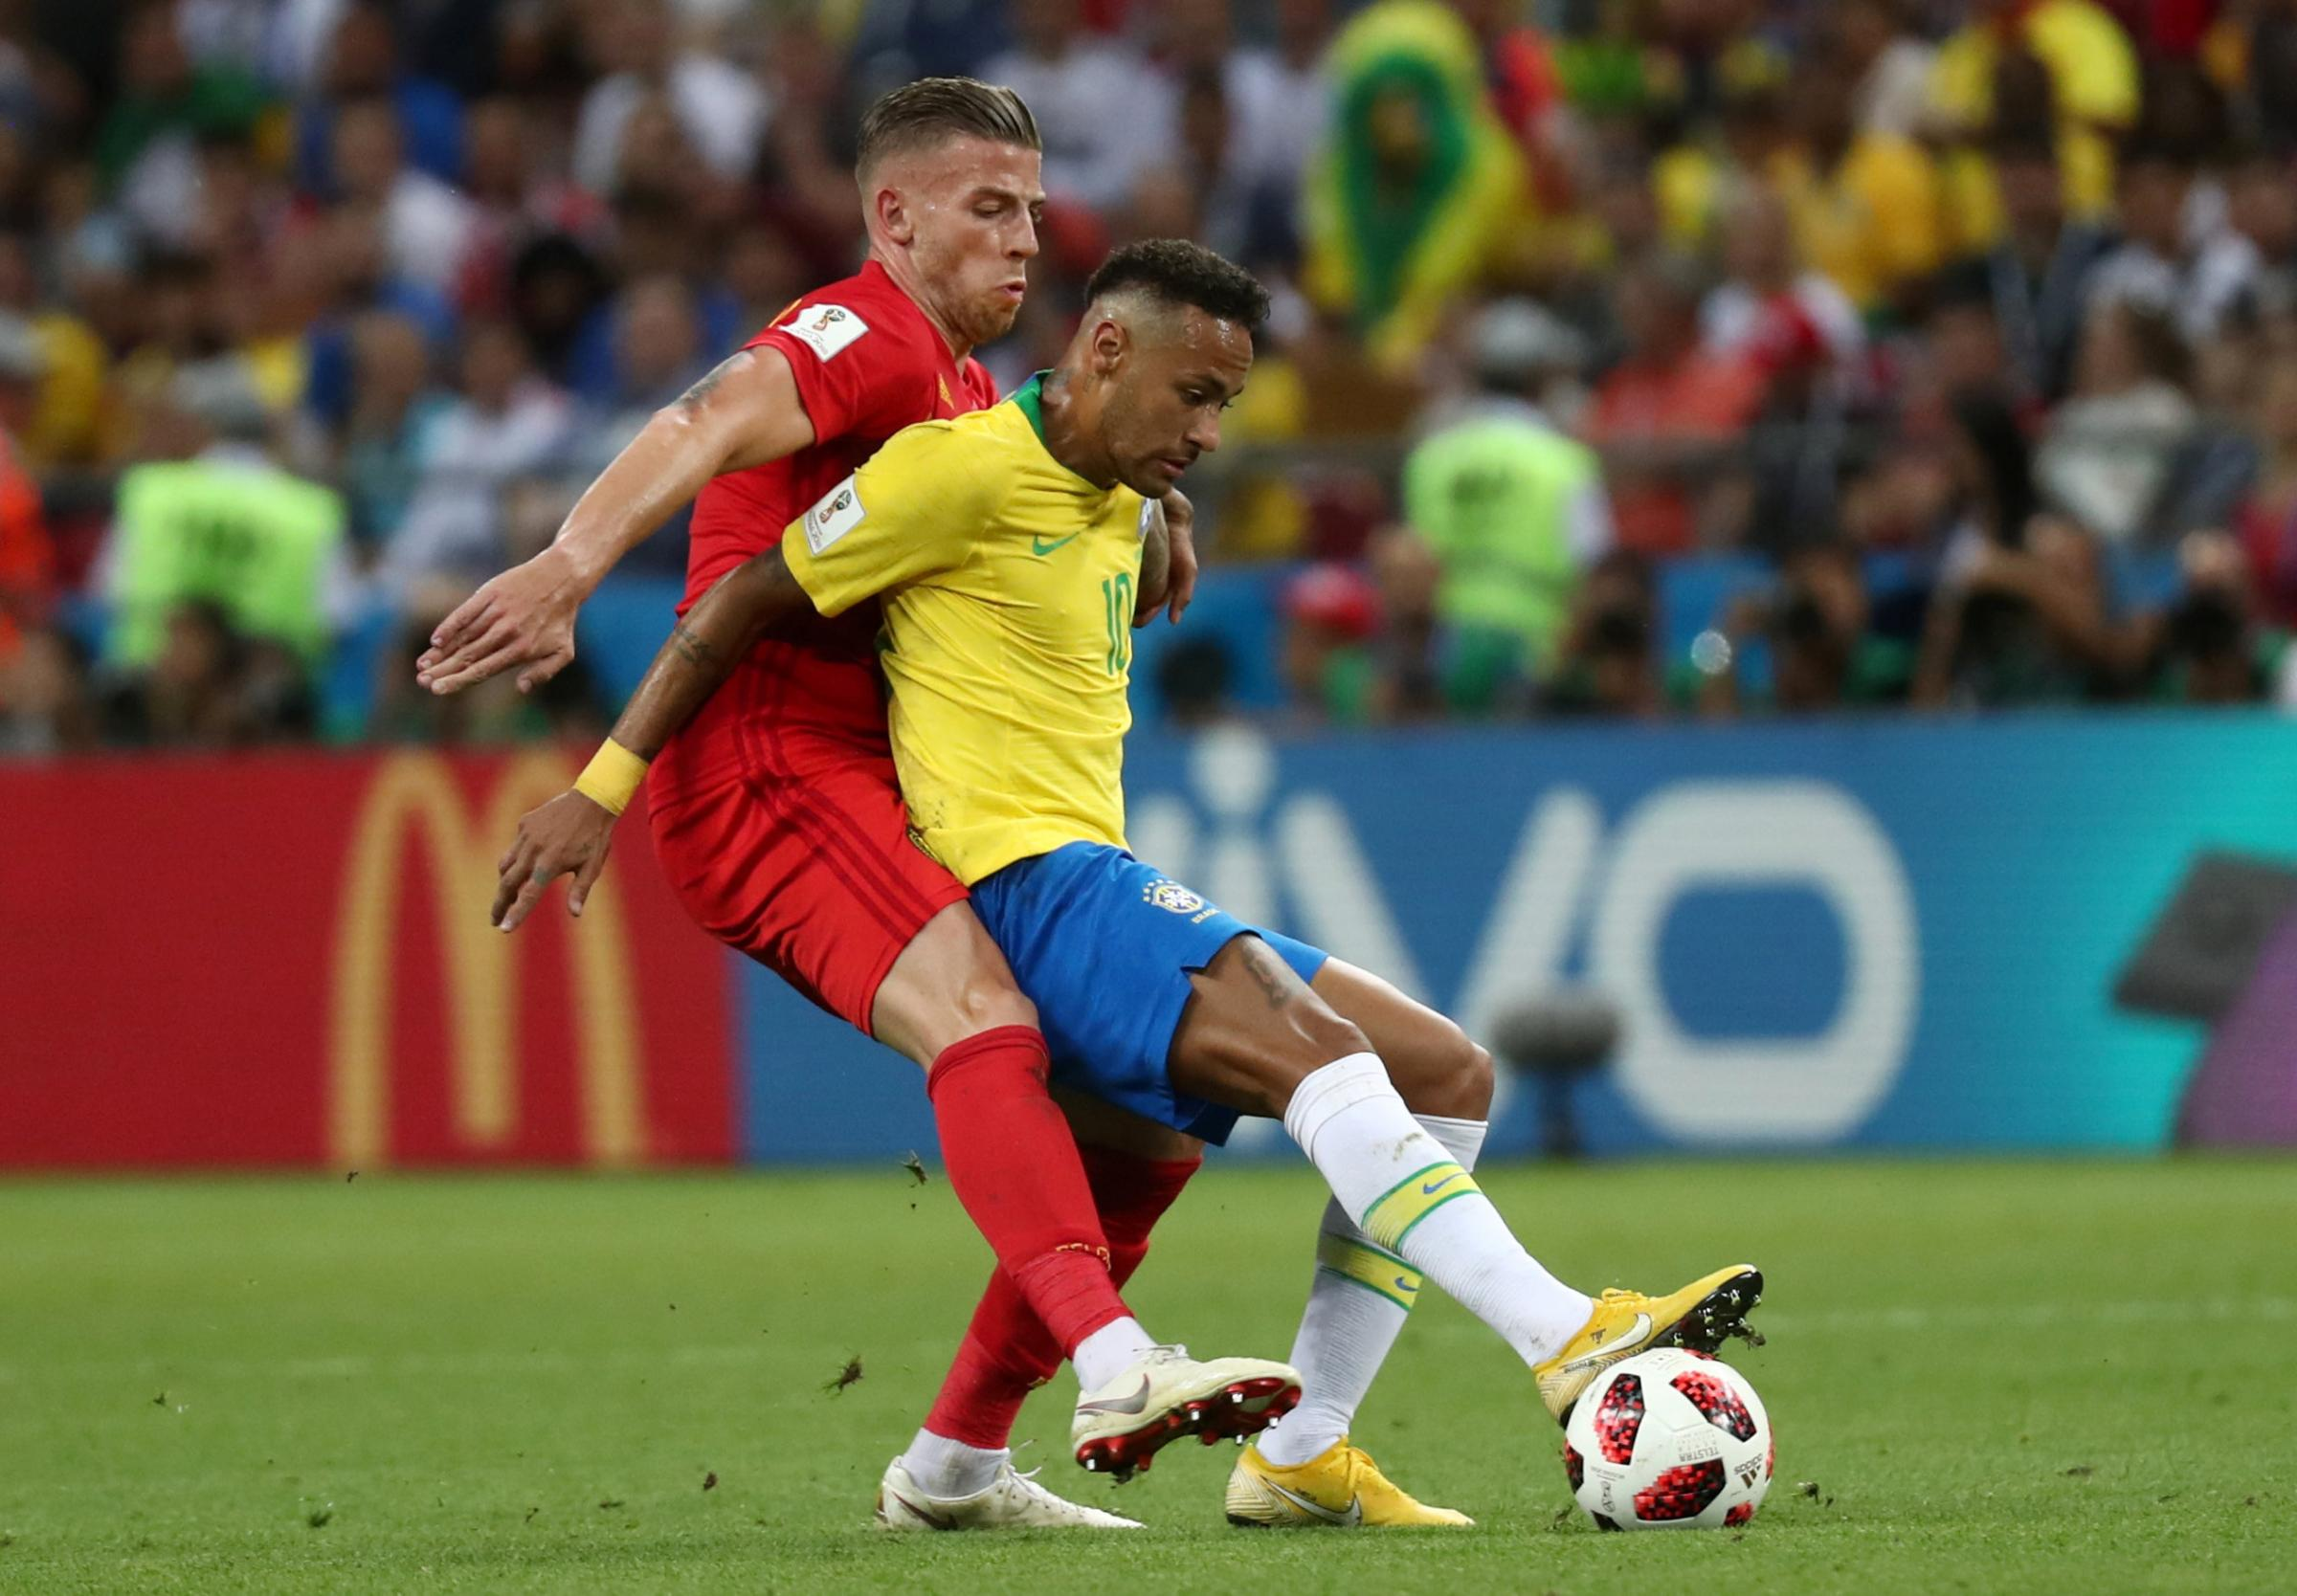 Toby Alderweireld challenges Neymar. Picture: Action Images